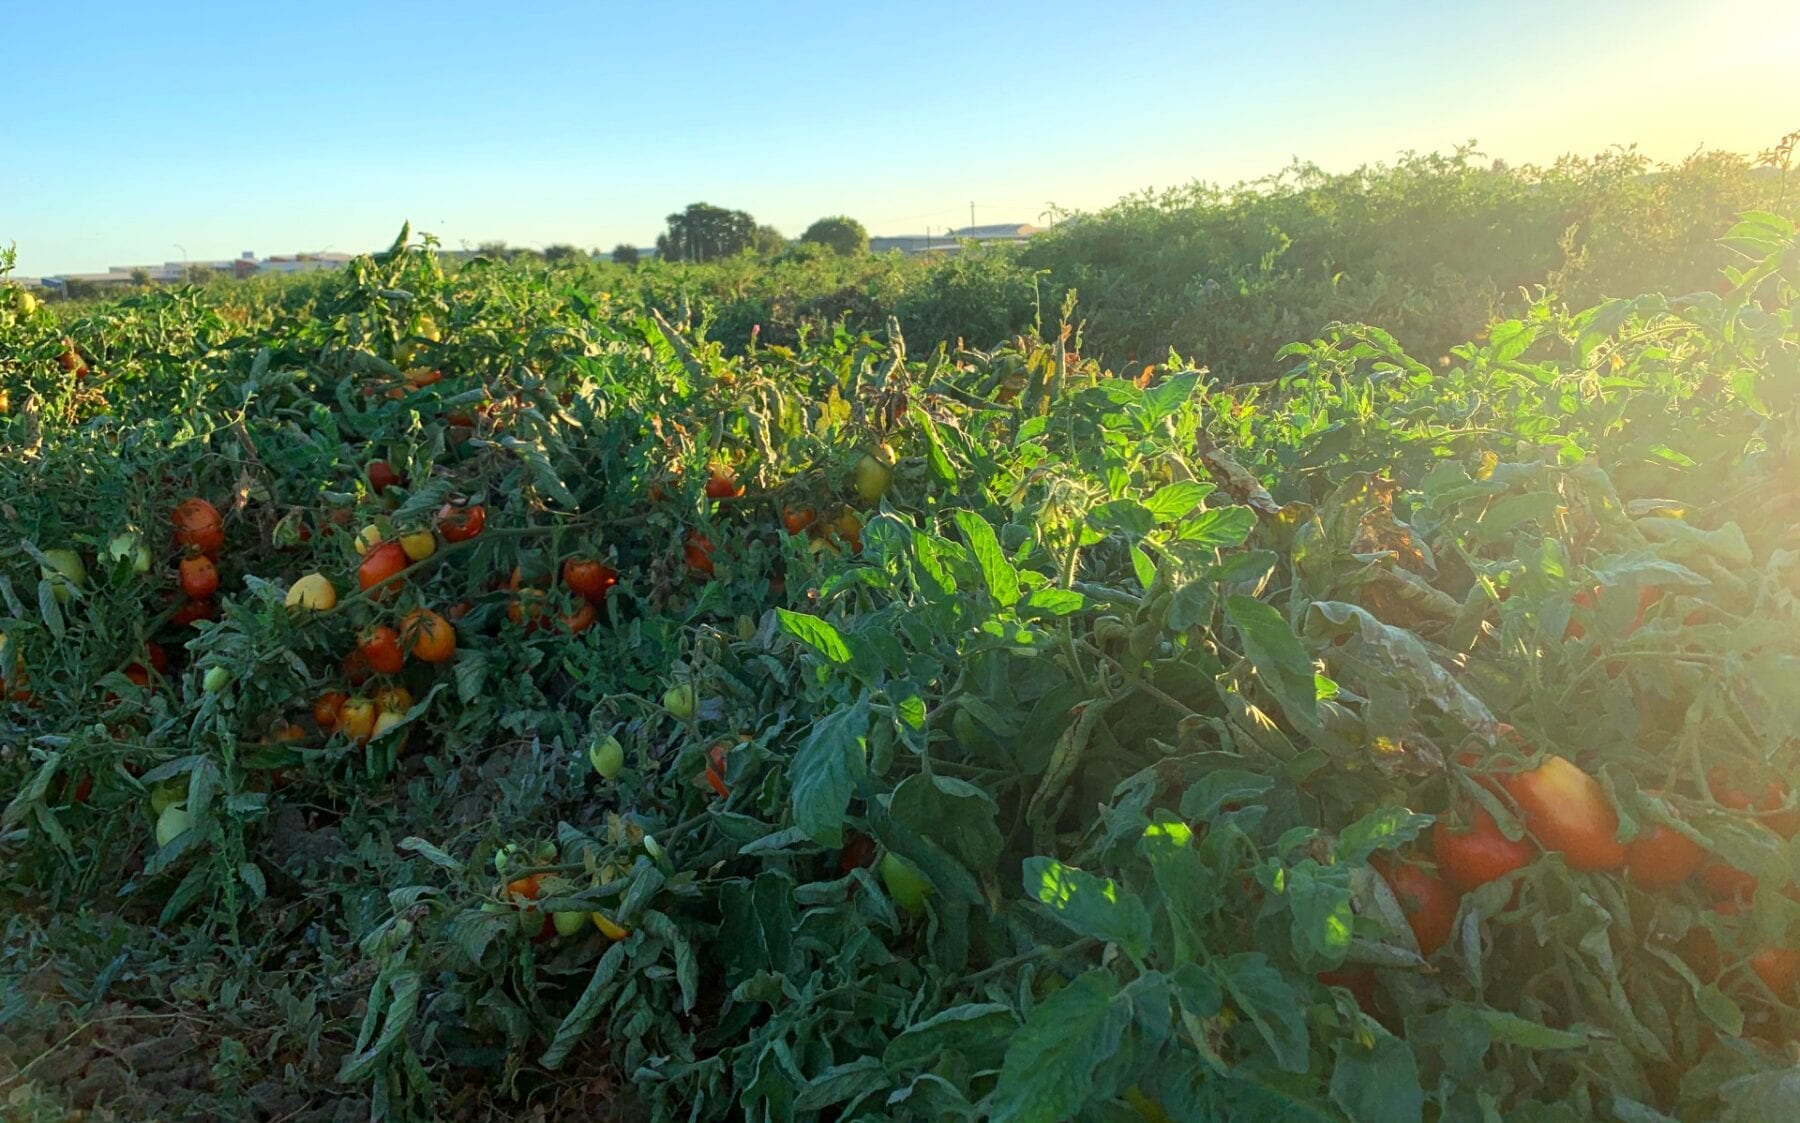 Tomatoes grown in Davis, CA and sampled to obtain genetic material for this research. (Siobhan Brady/UC Davis)